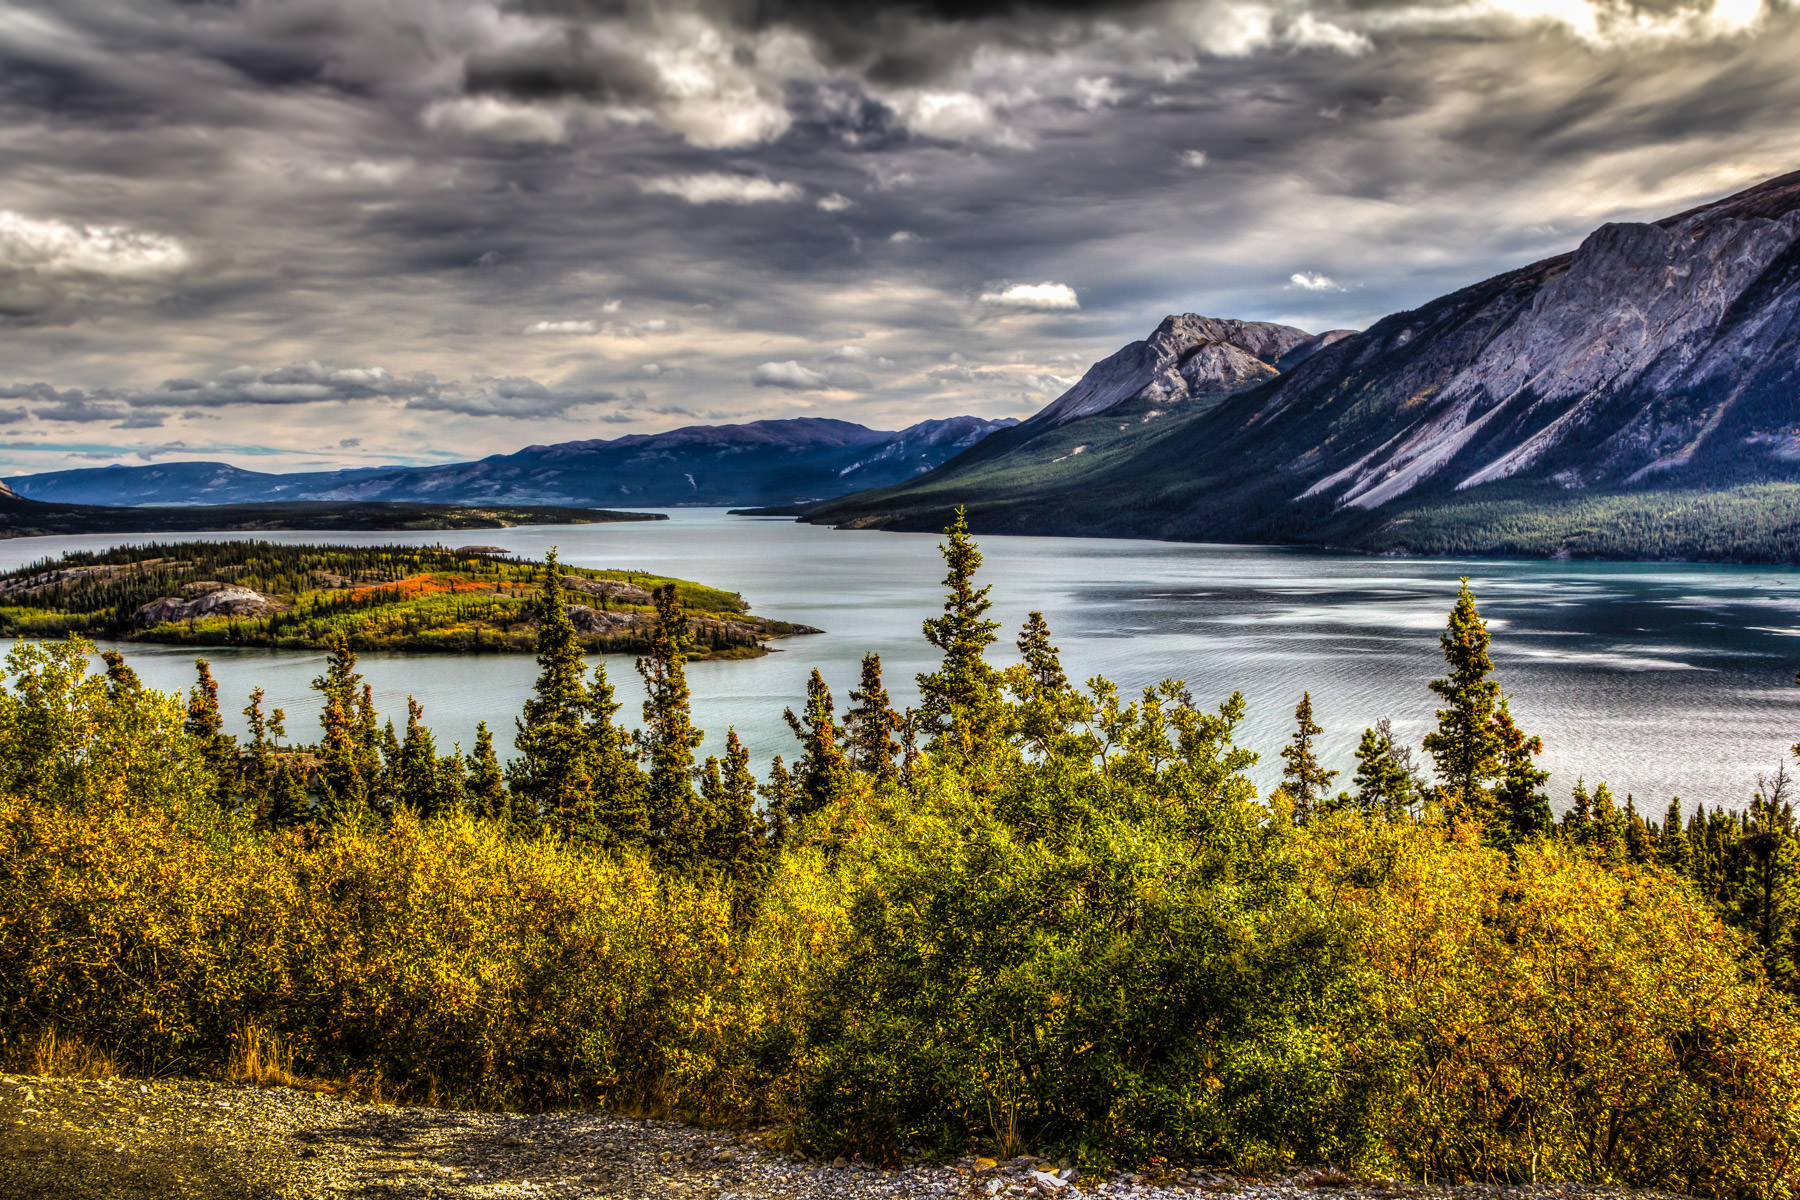 Storm clouds form over Yukon Territory, Canada's Tagish Lake.